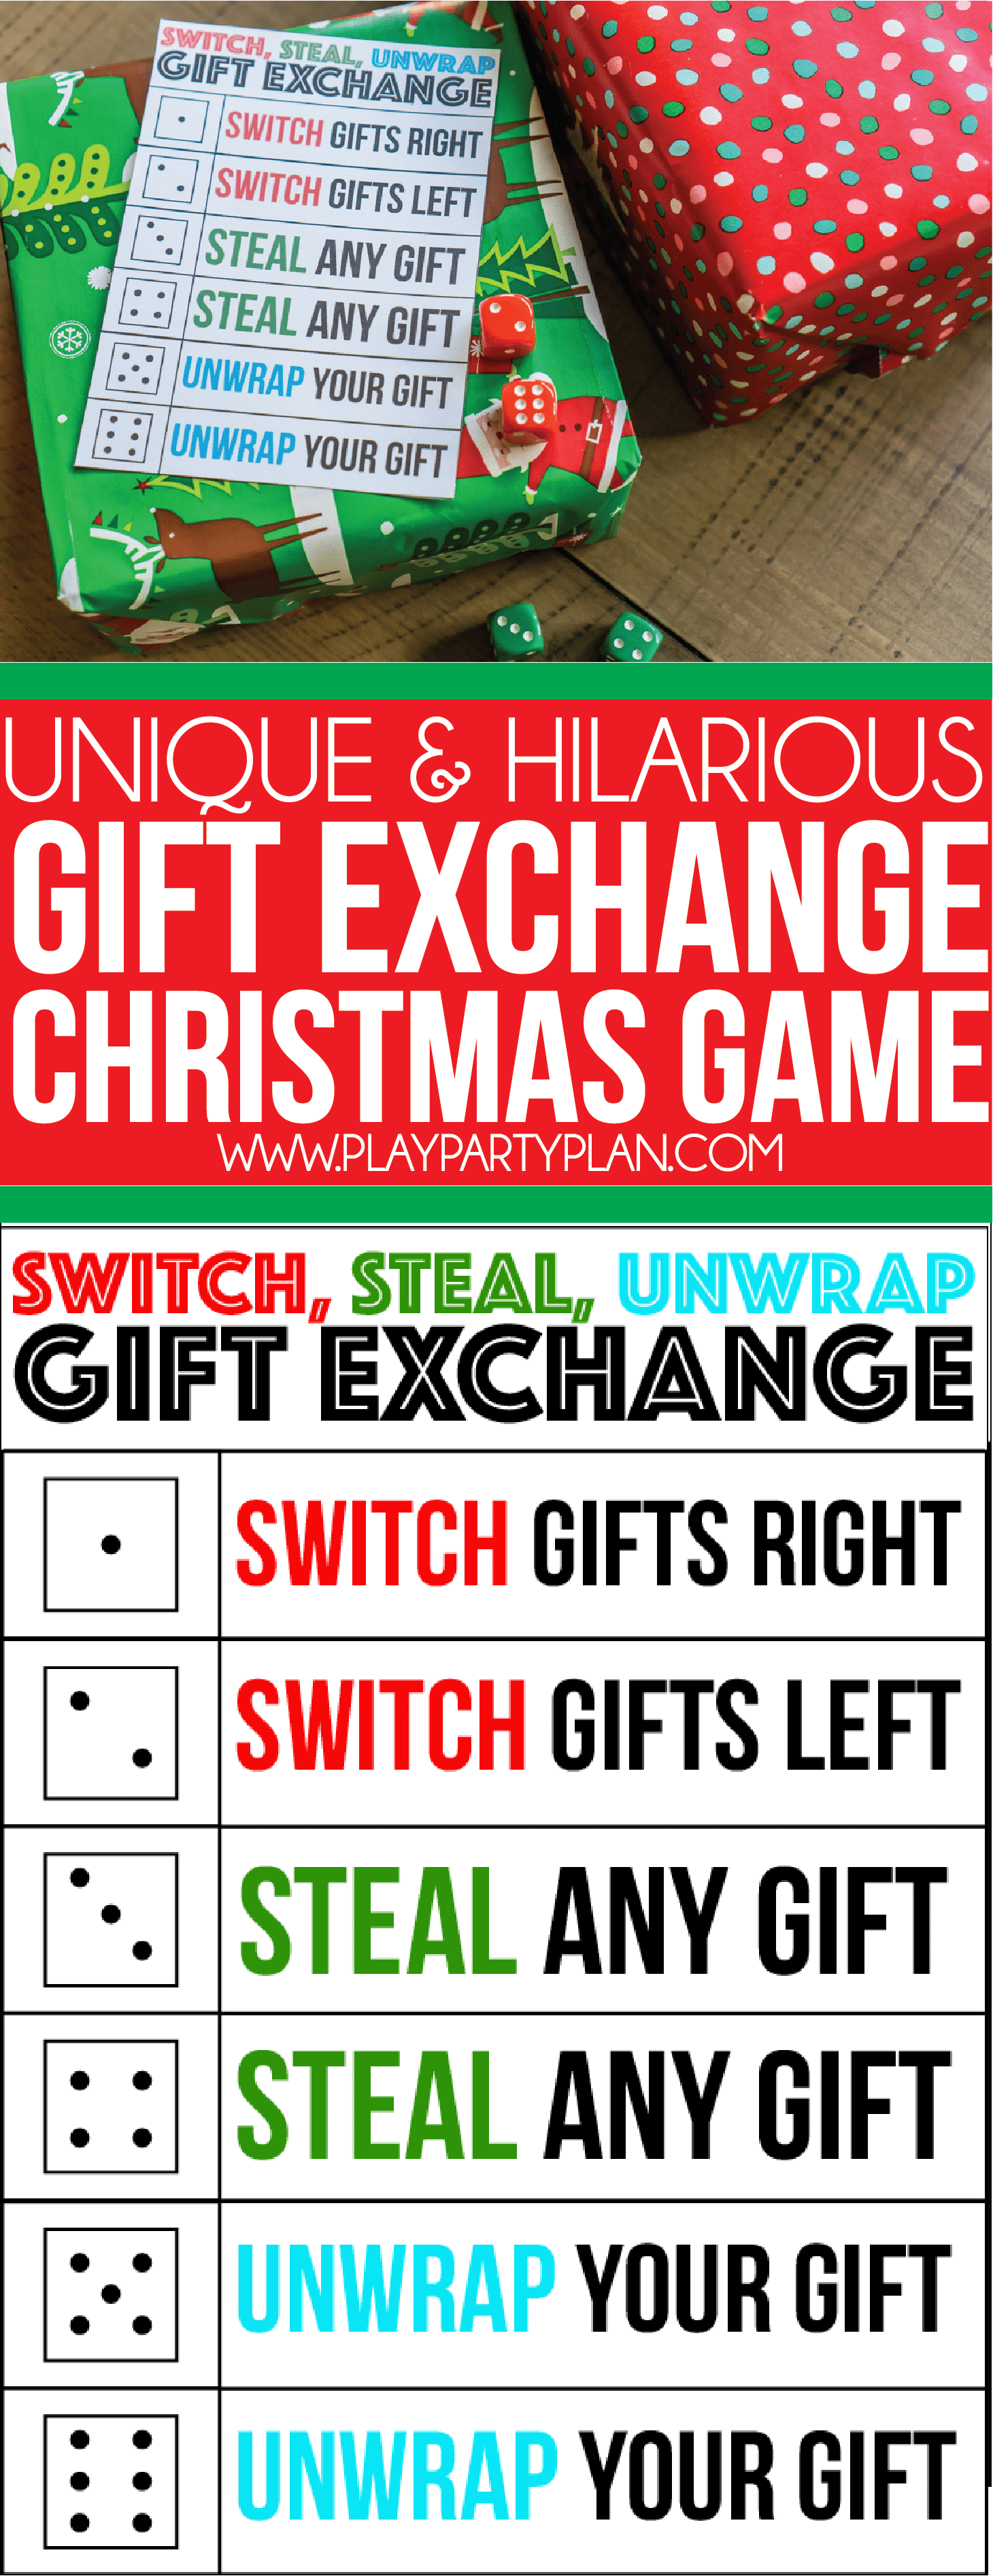 Exchange gift ideas christmas